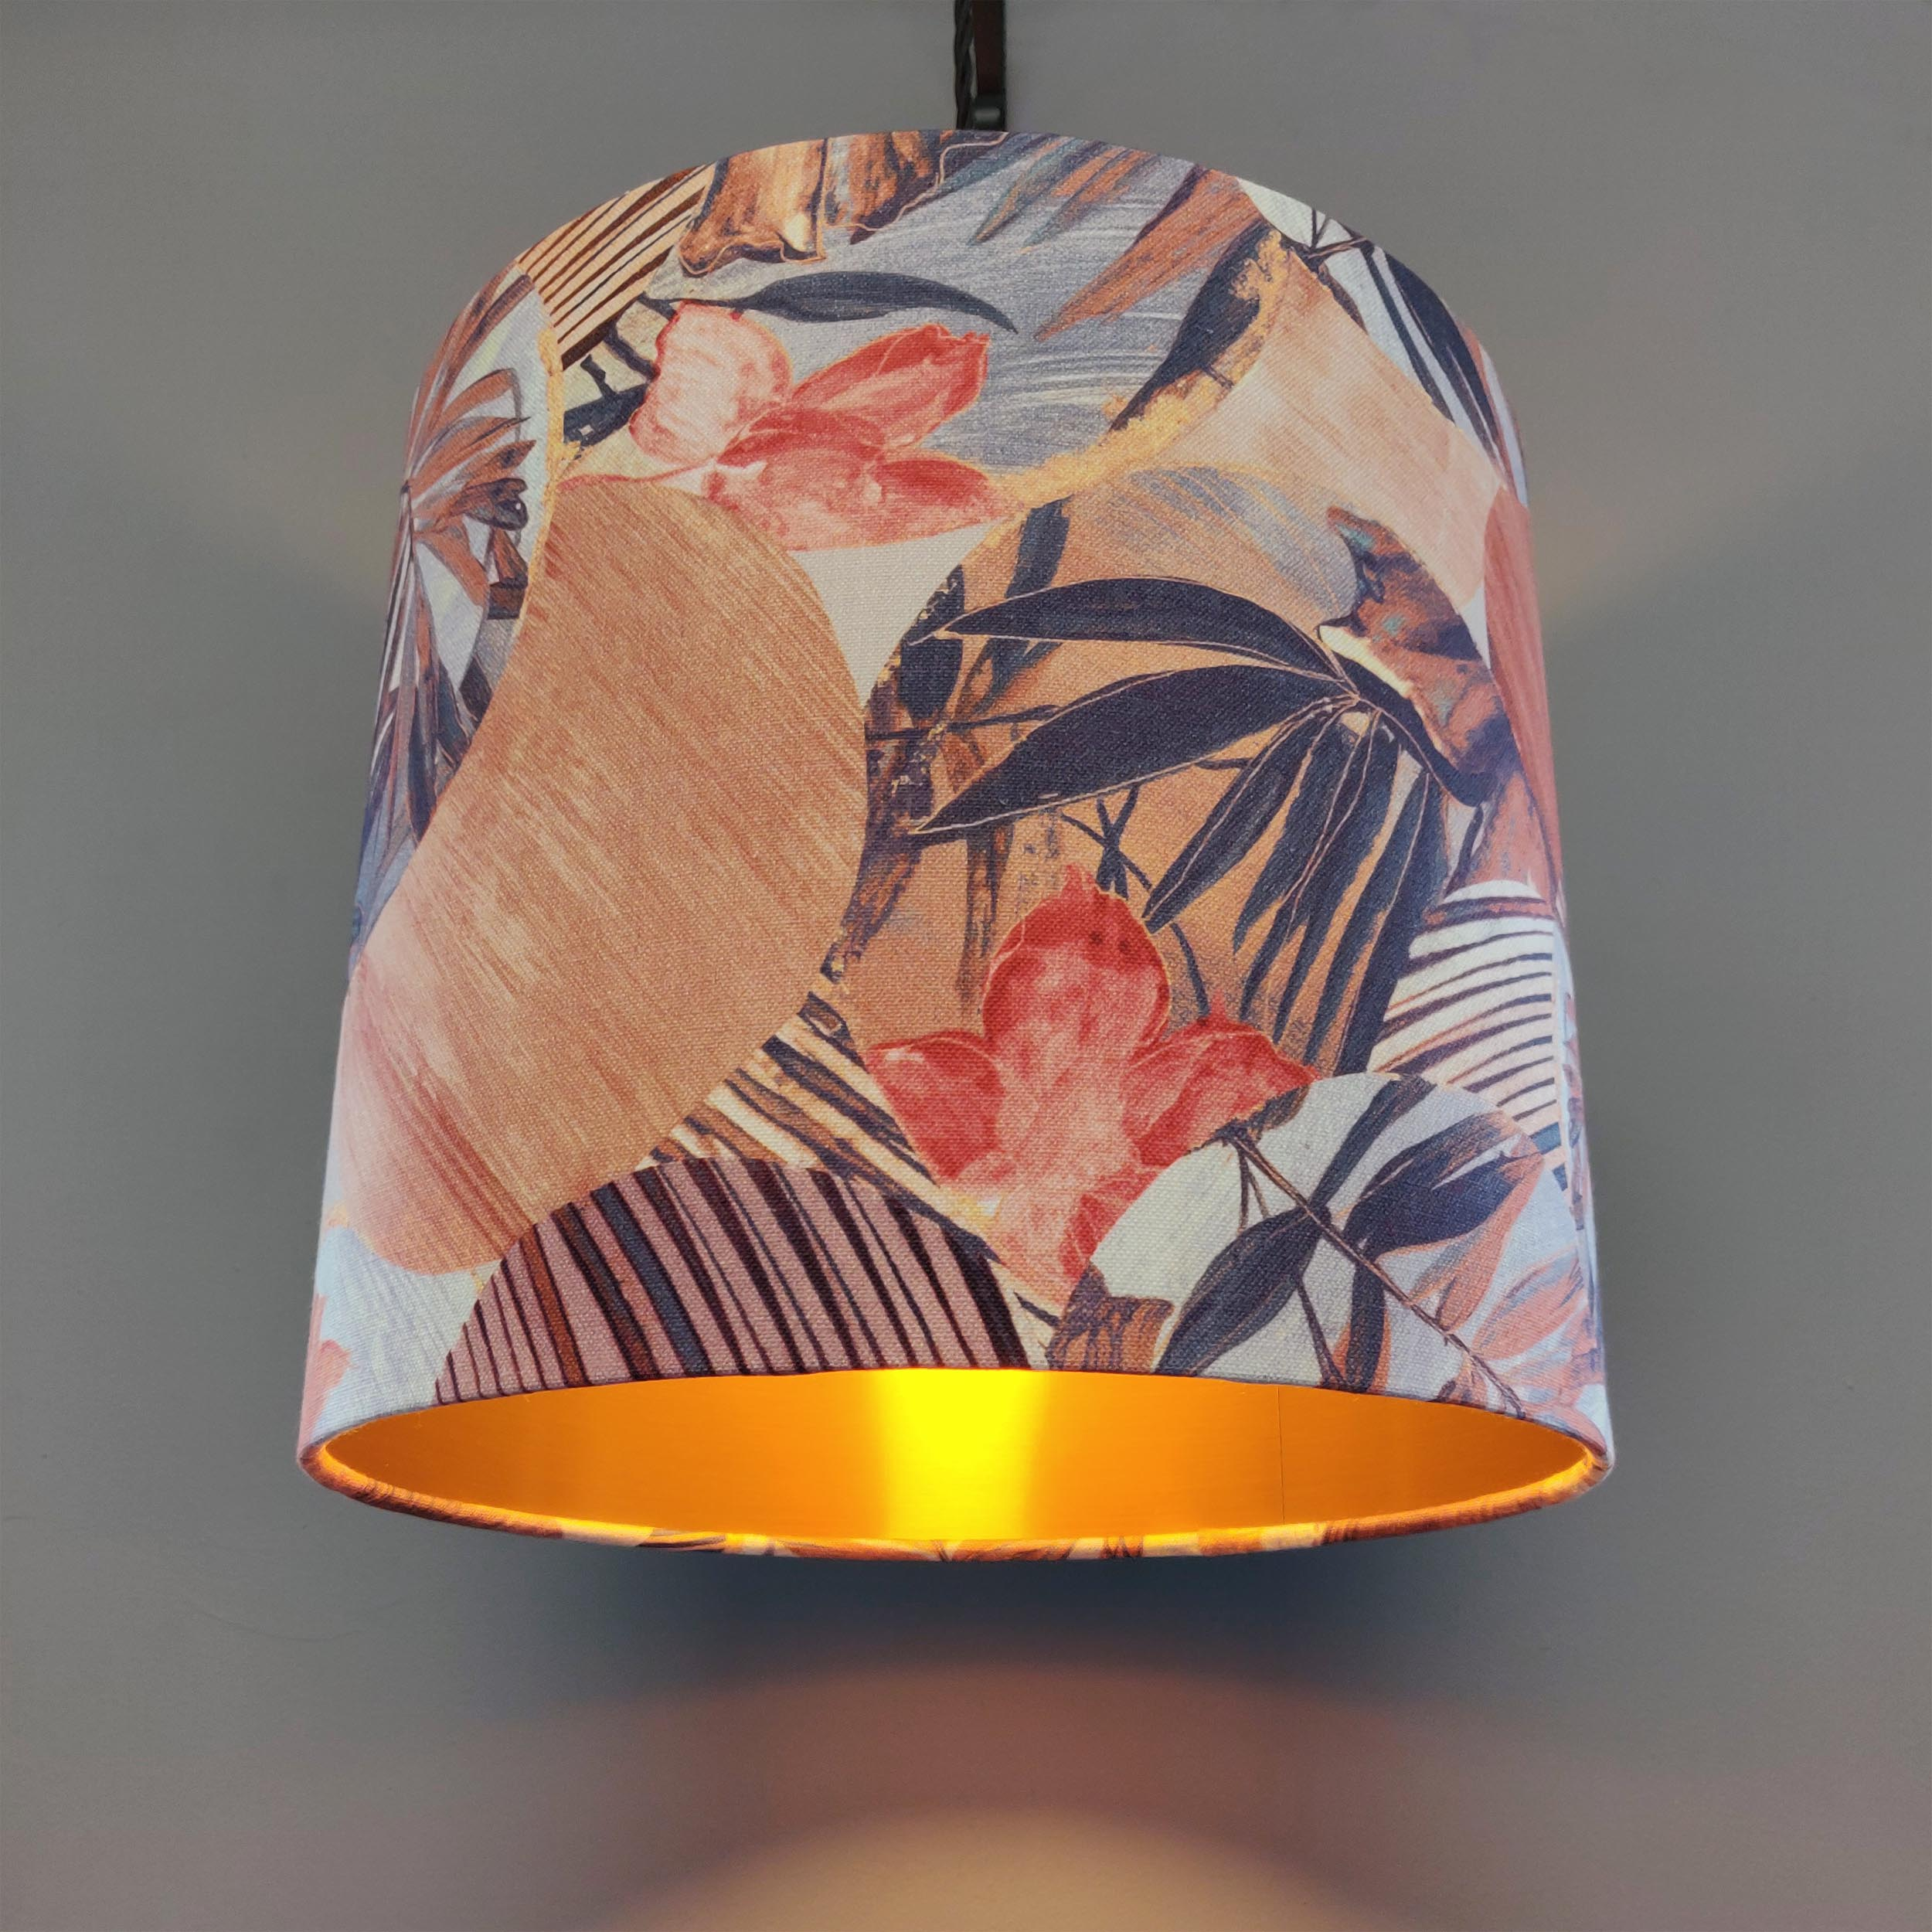 Lampshade in Kyoto fabric with an Origami design, in Brown and Pink Patterned Floral Cotton